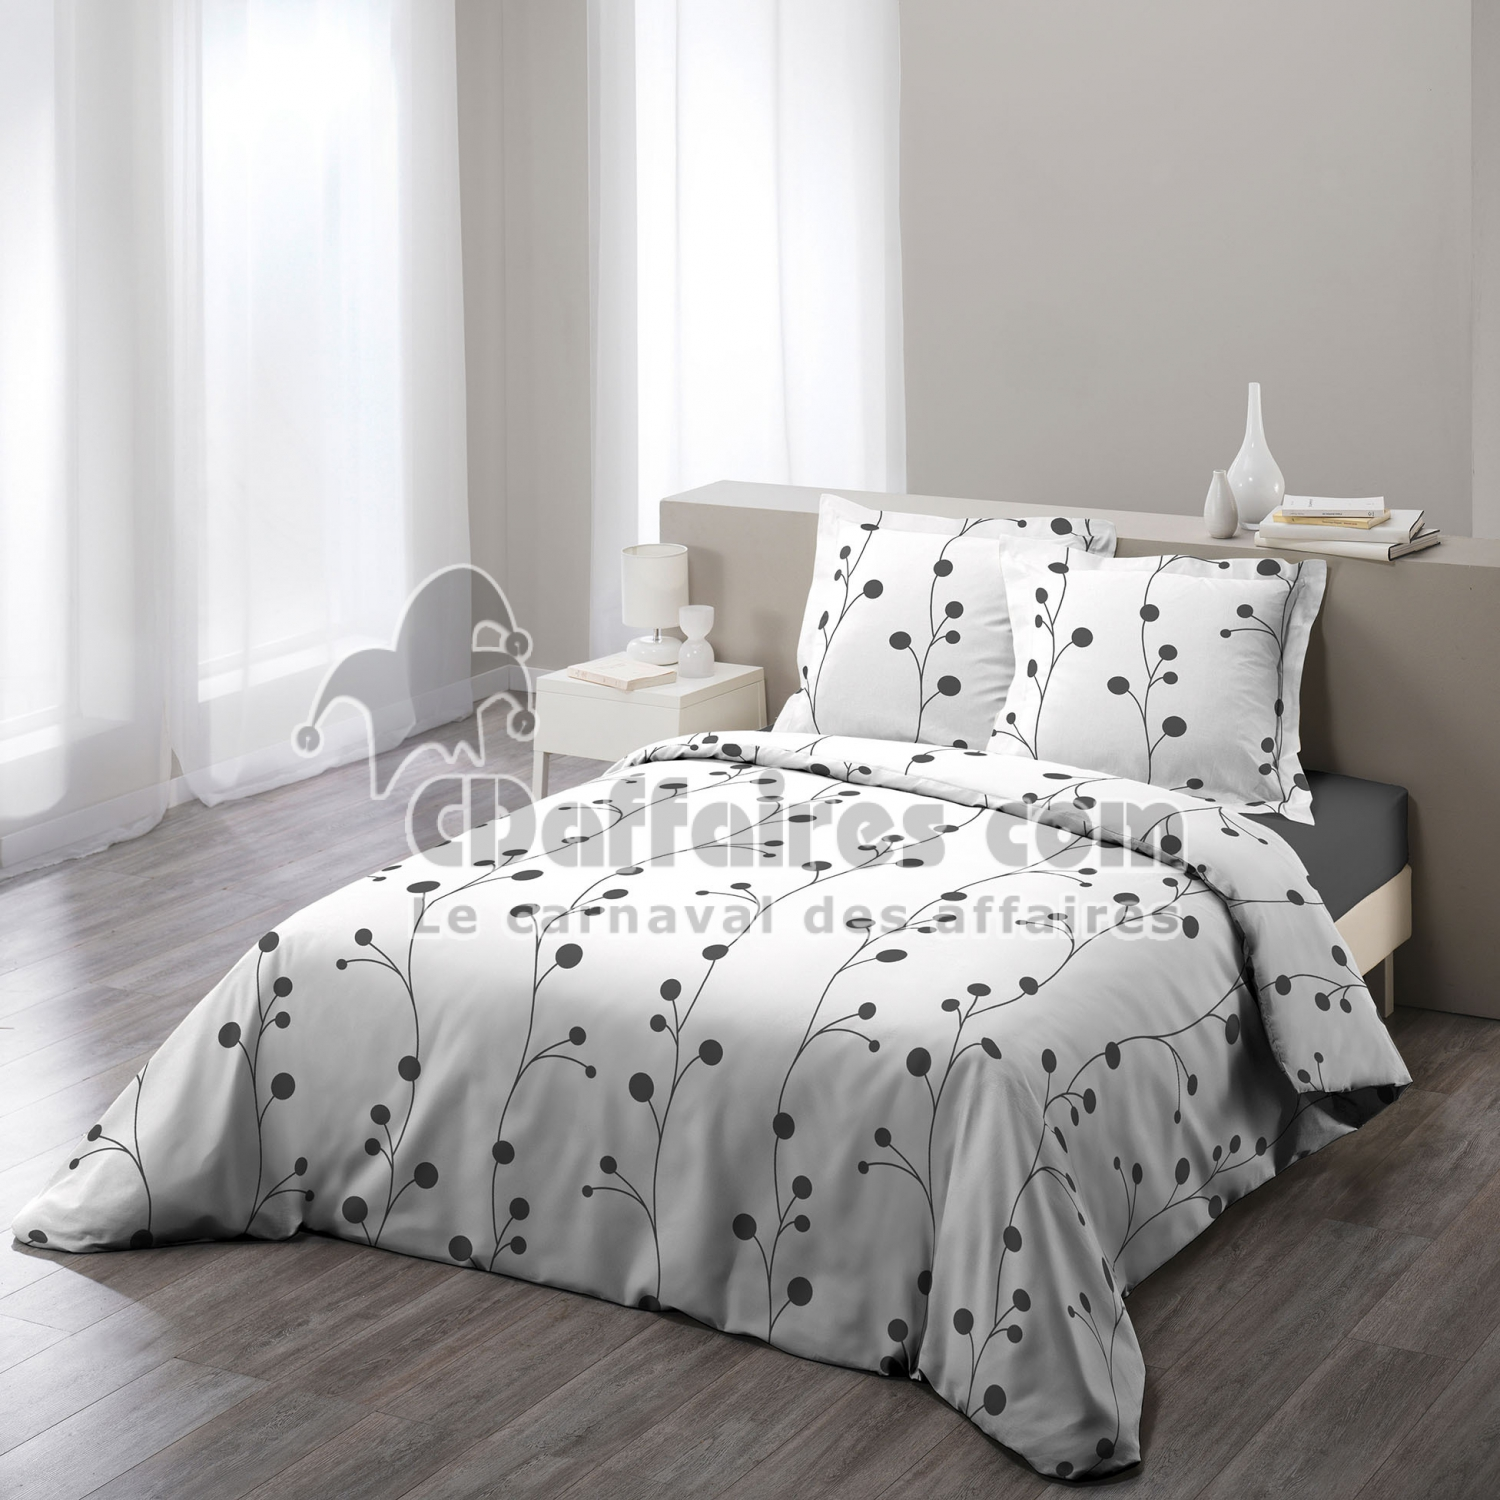 parure 3 p 260 x 240 cm imprime 57 fils allover clochettes blanc cdaffaires. Black Bedroom Furniture Sets. Home Design Ideas